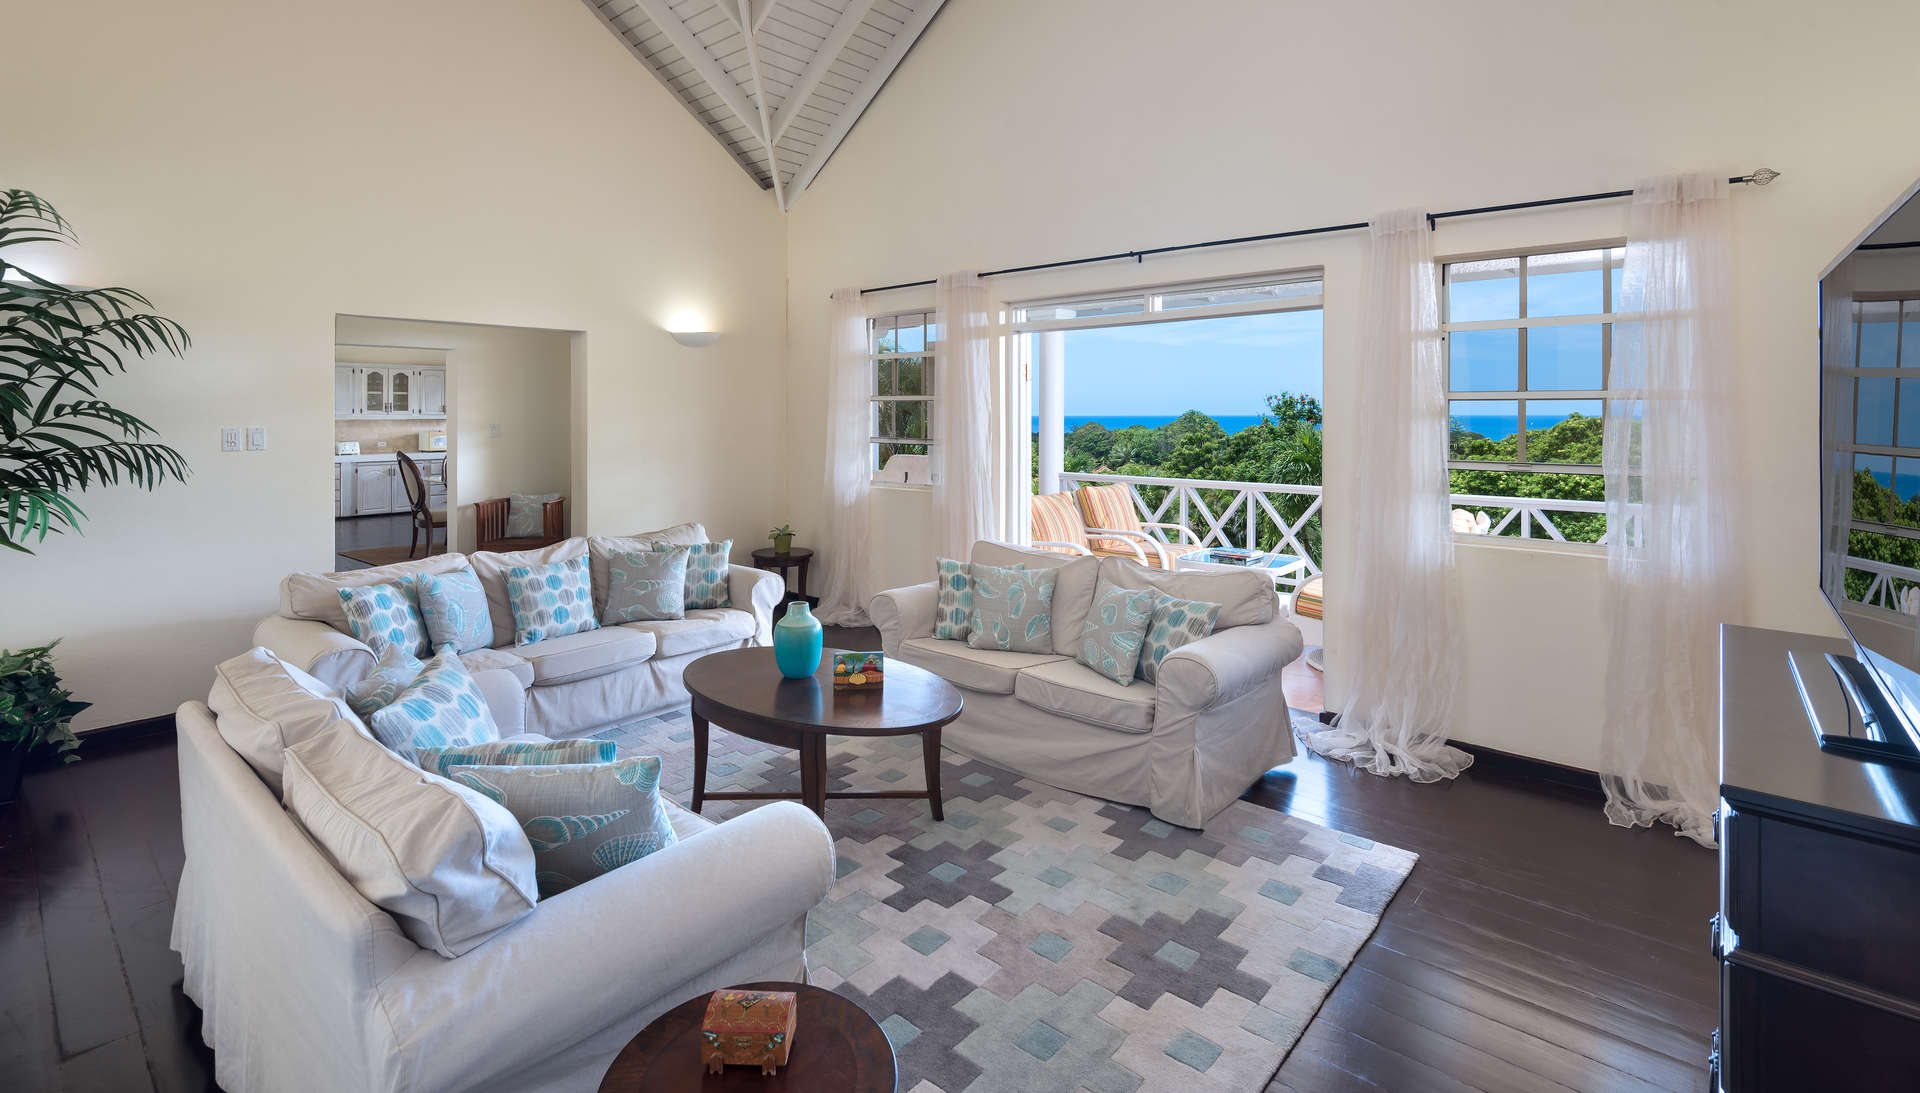 Luxury villa rentals caribbean - Barbados - St james - Holetown st james - Belle View - Image 1/13